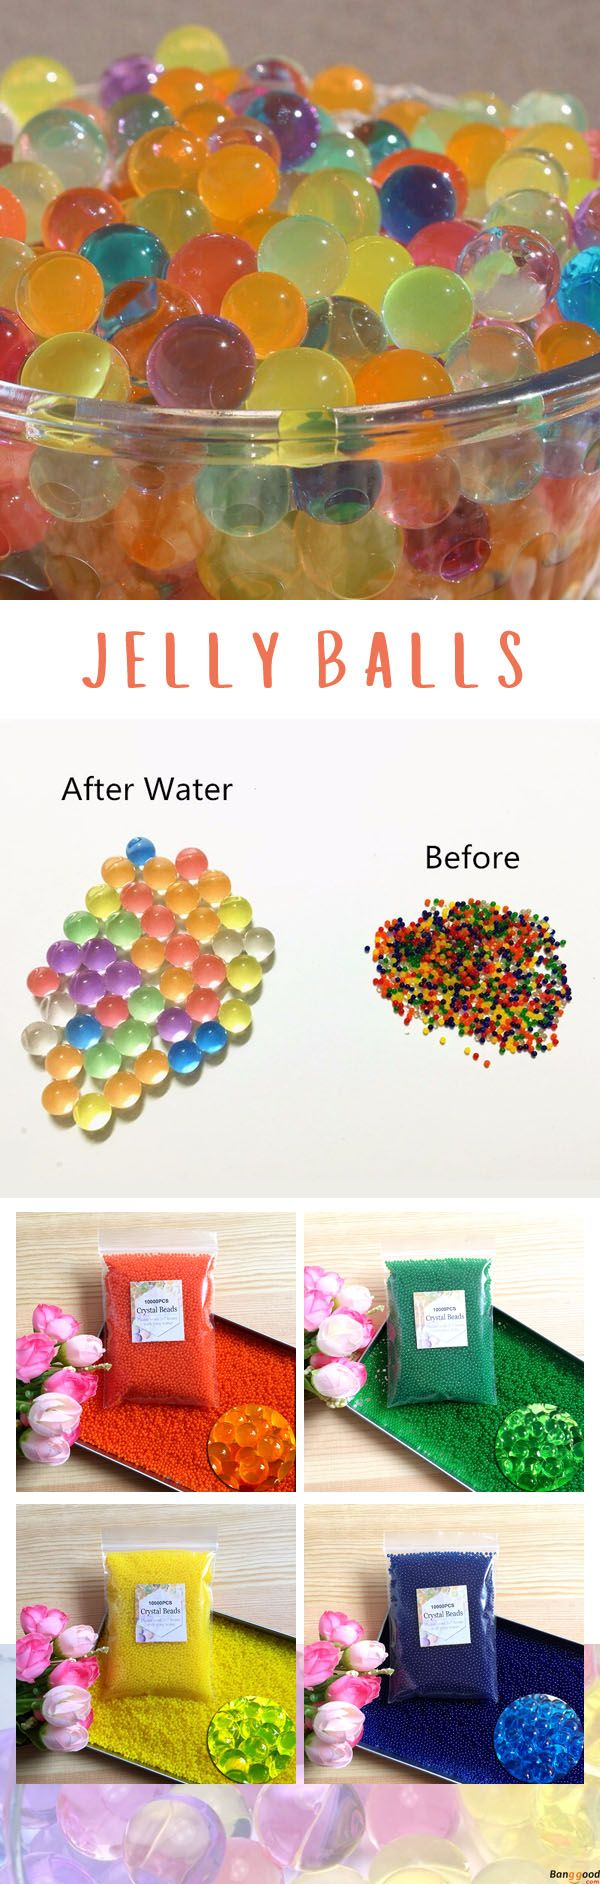 US$3.98+ Free Shipping. 10000 Pcs Water jelly Balls. Shop at banggood. #home#art#christmas#merrychristmas#design#homedecor#decor#toy